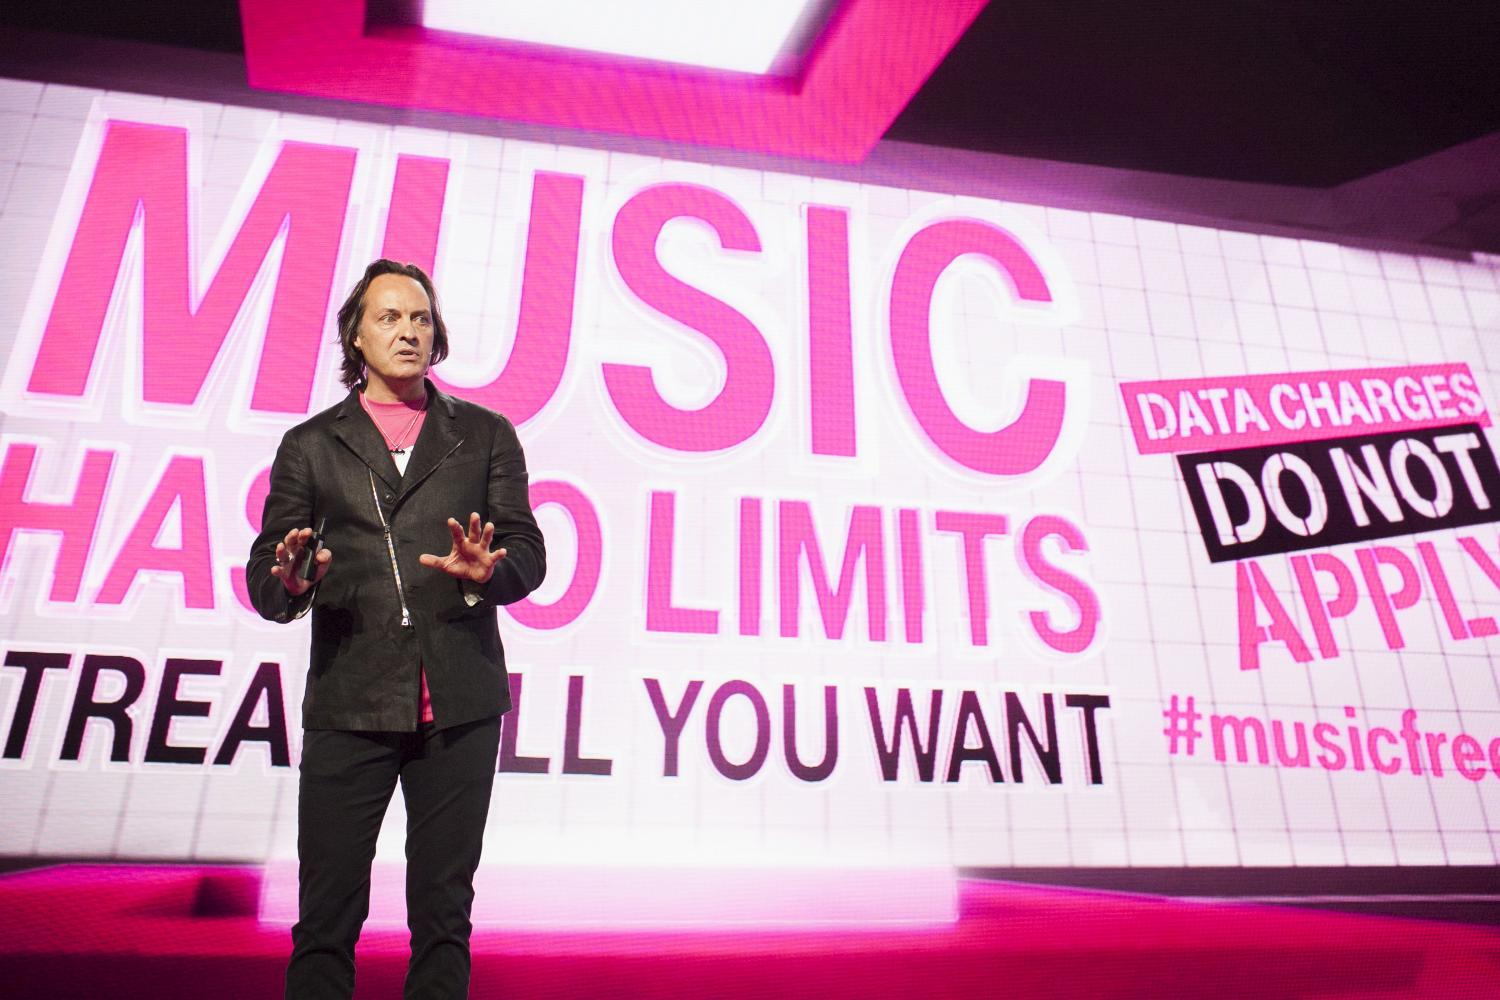 T-Mobile CEO John Legere speaks during an event in Seattle on Wednesday, June 18, 2014